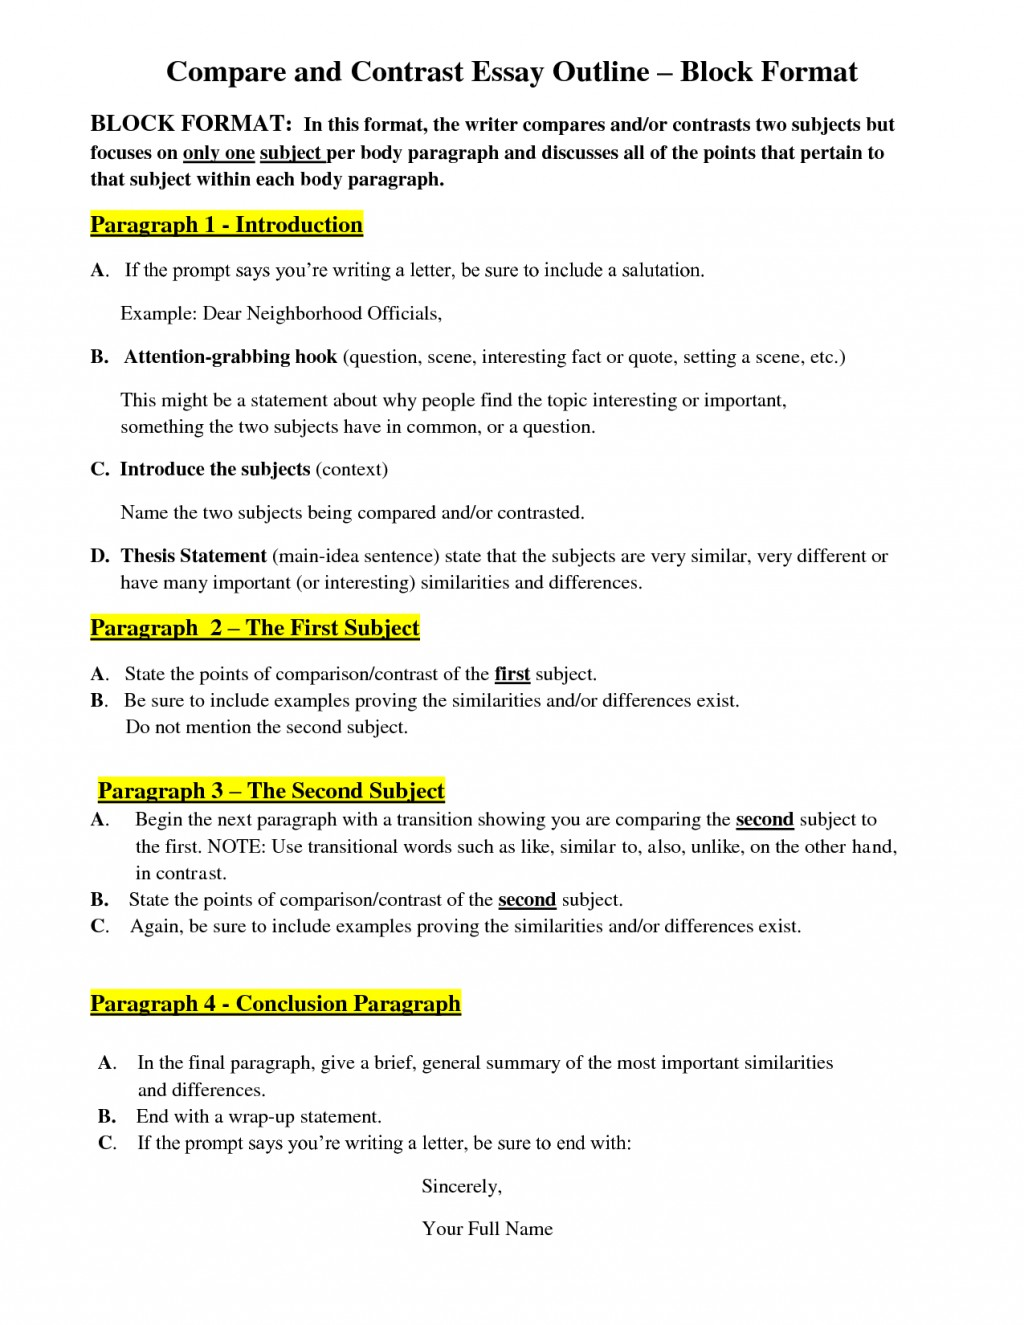 003 Compare And Contrast Essay Structure Stupendous Ppt Format Outline Large